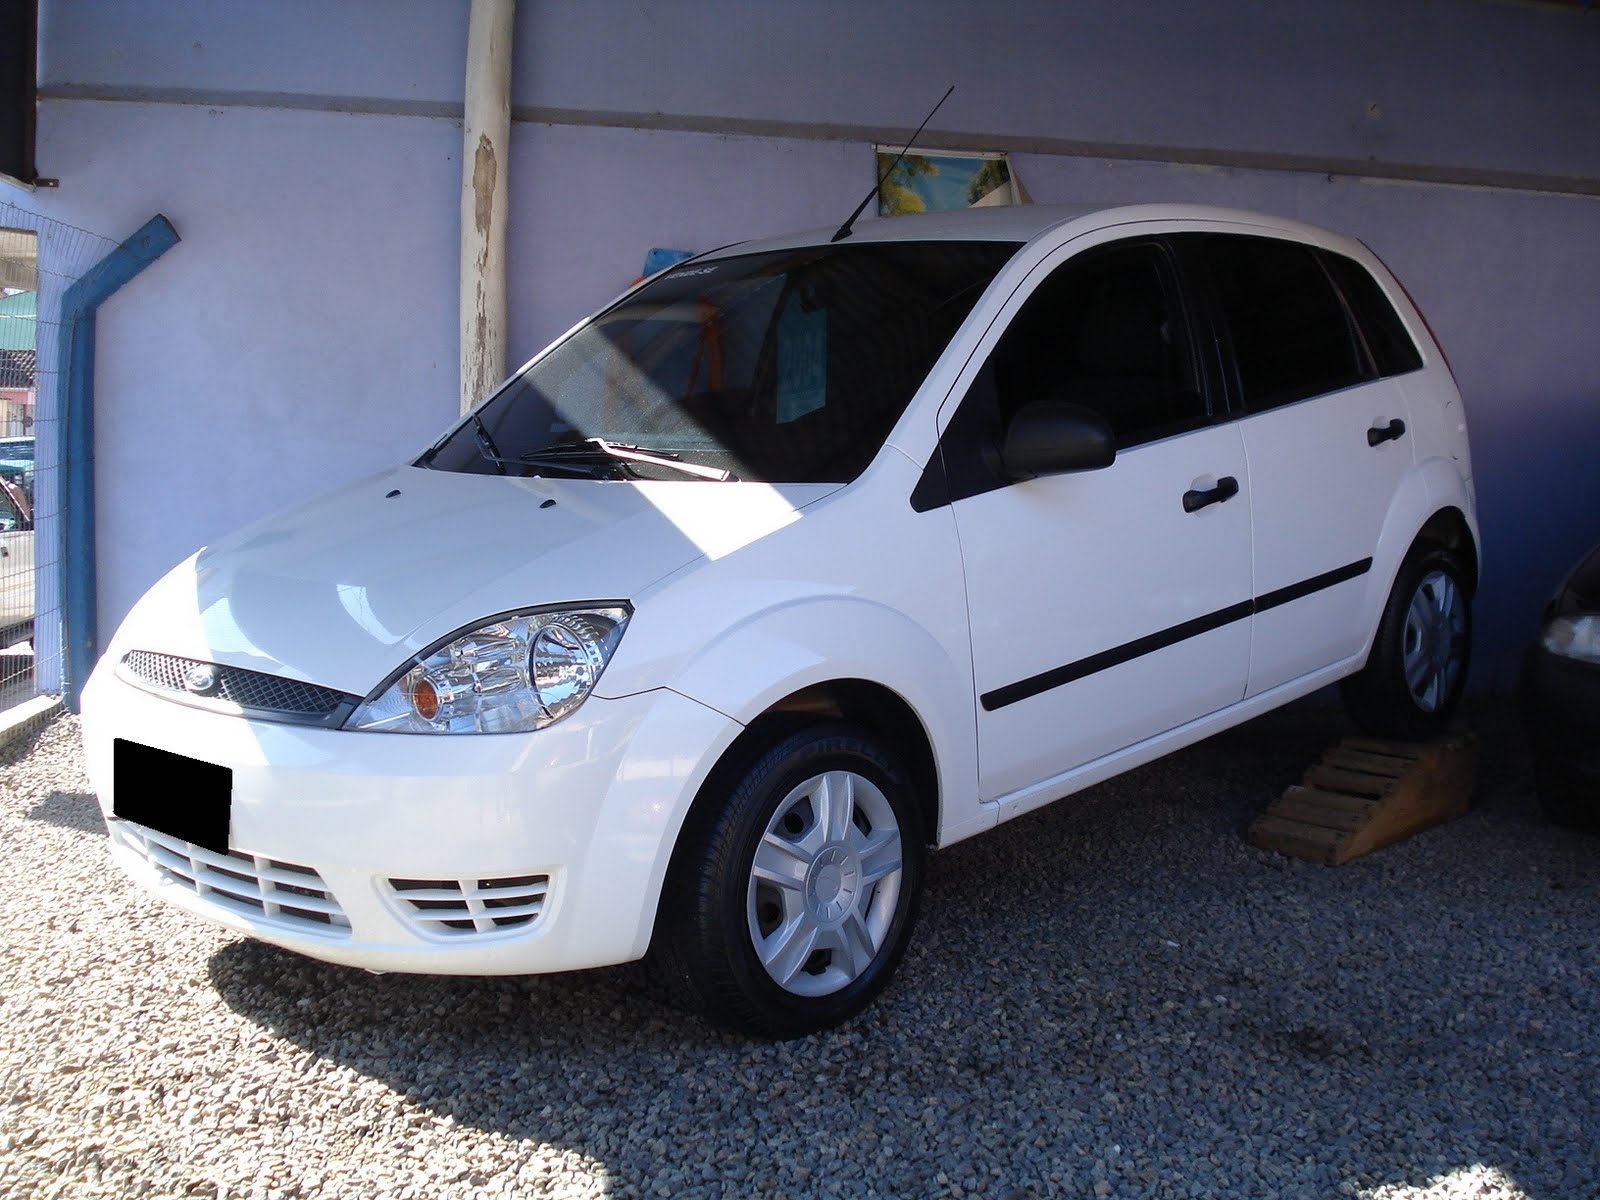 Ford Fiesta 1.0 2004 photo - 7